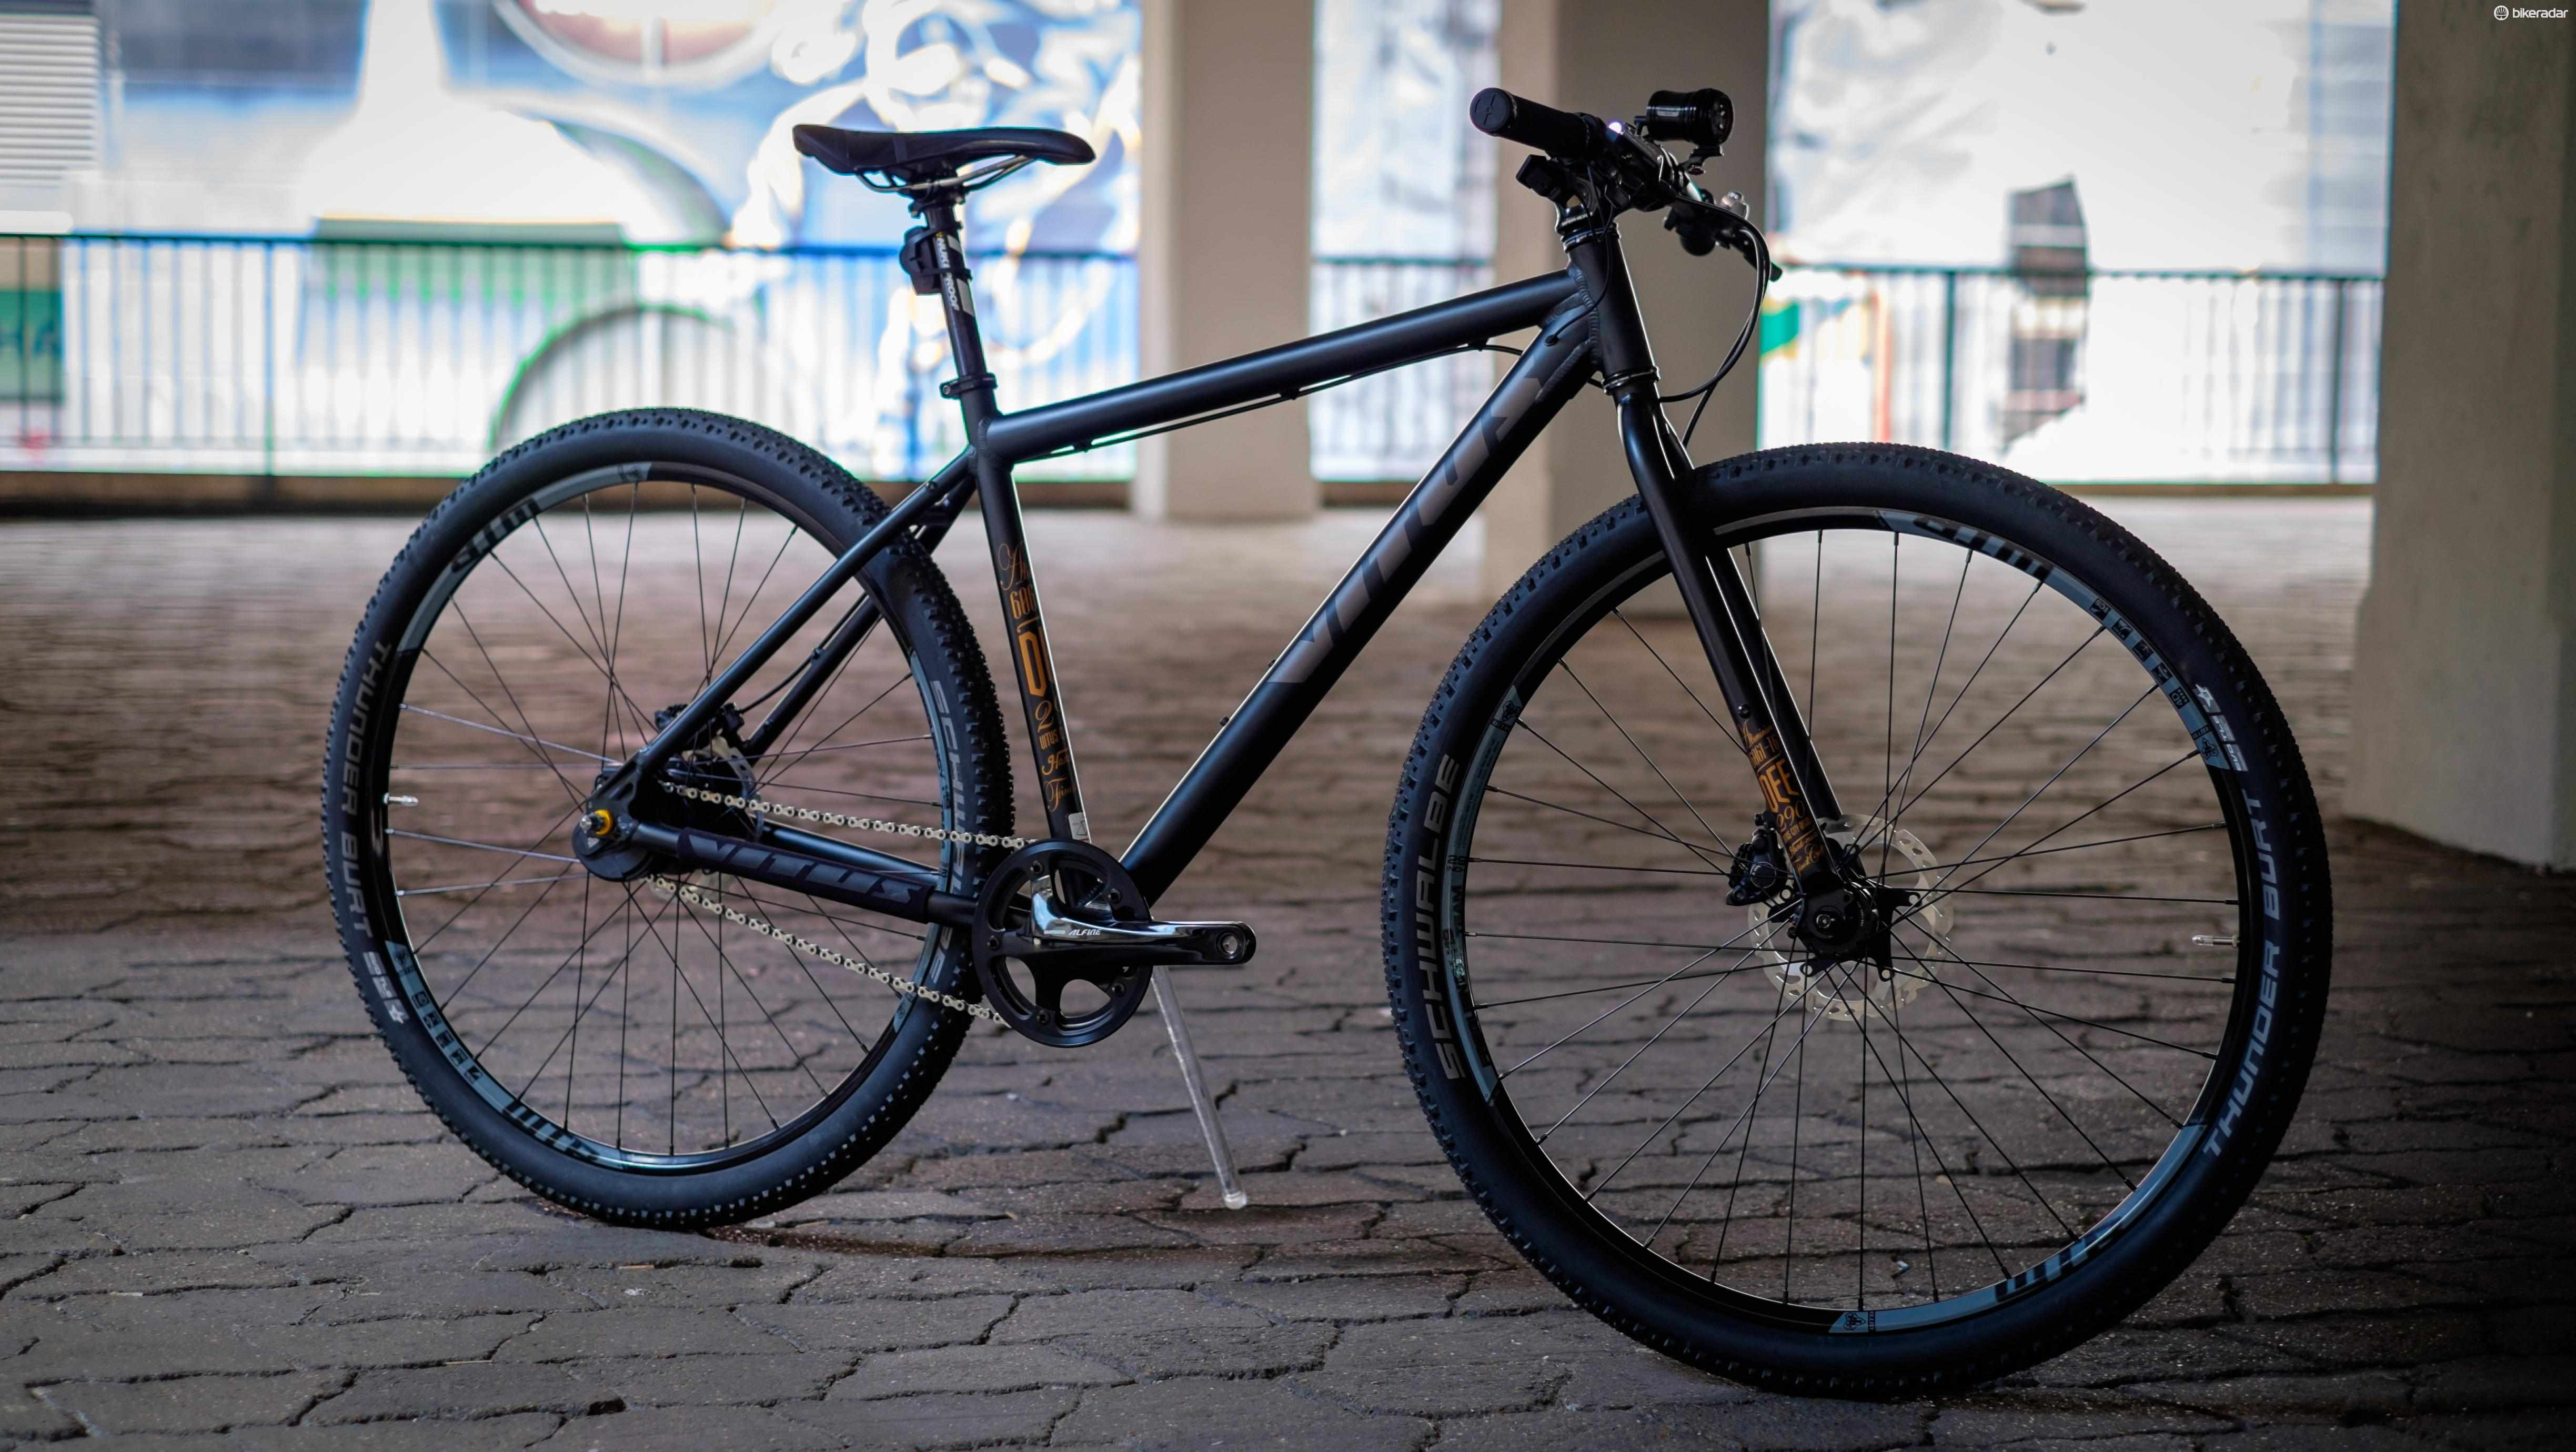 Chain Reaction Cycles' £2,000 super commuter